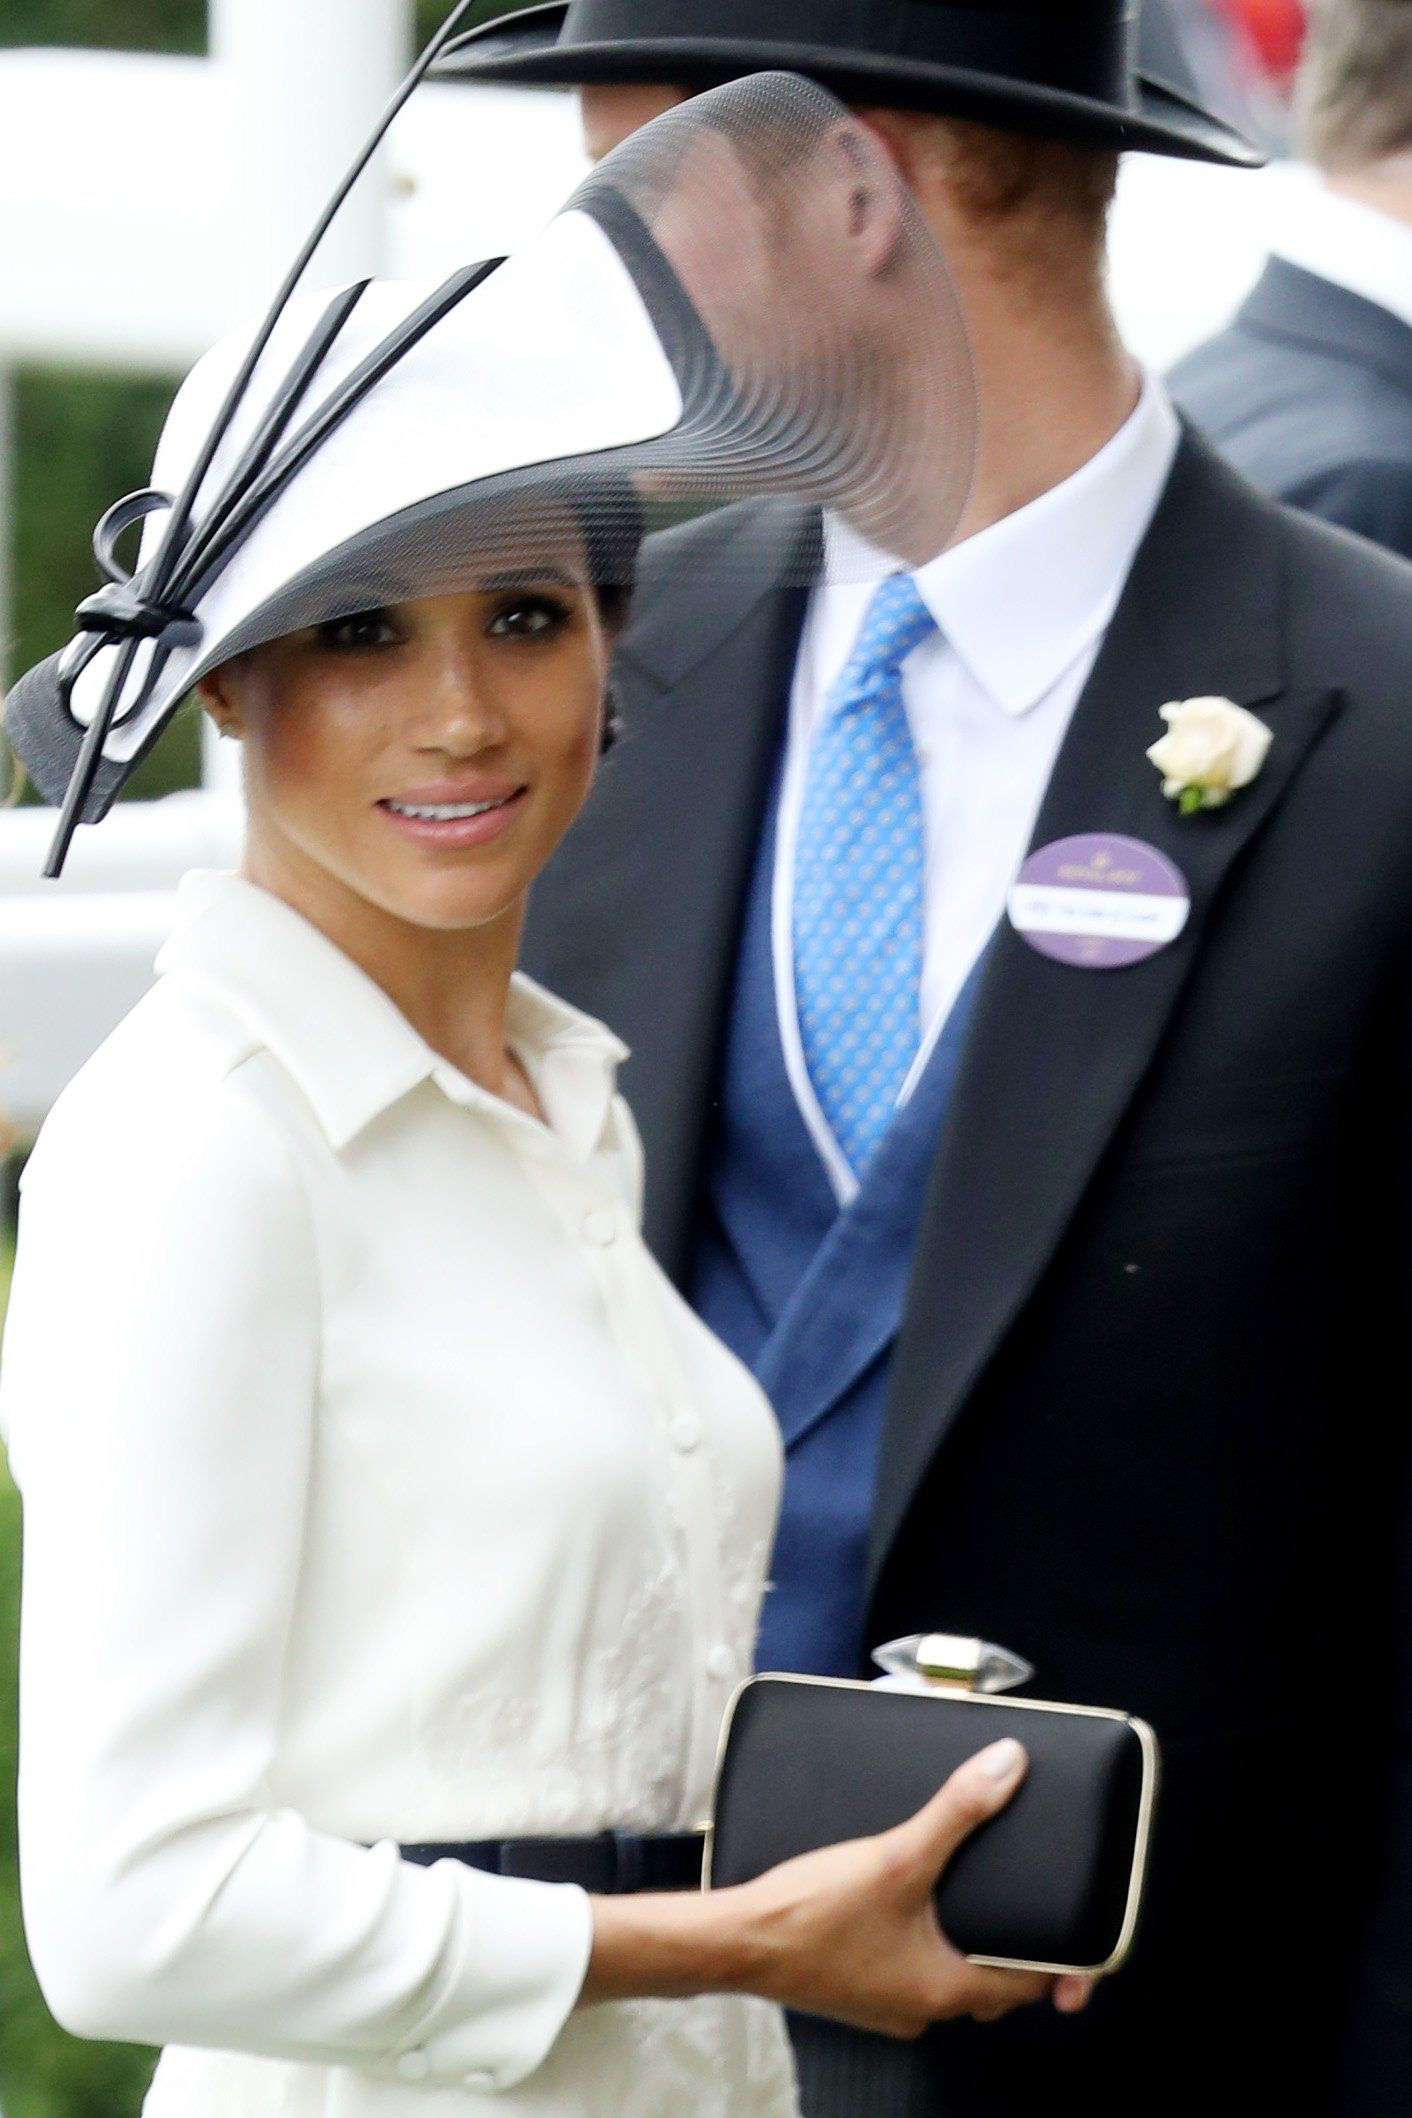 Meghan markle made her royal ascot debut in a surprisingly simple